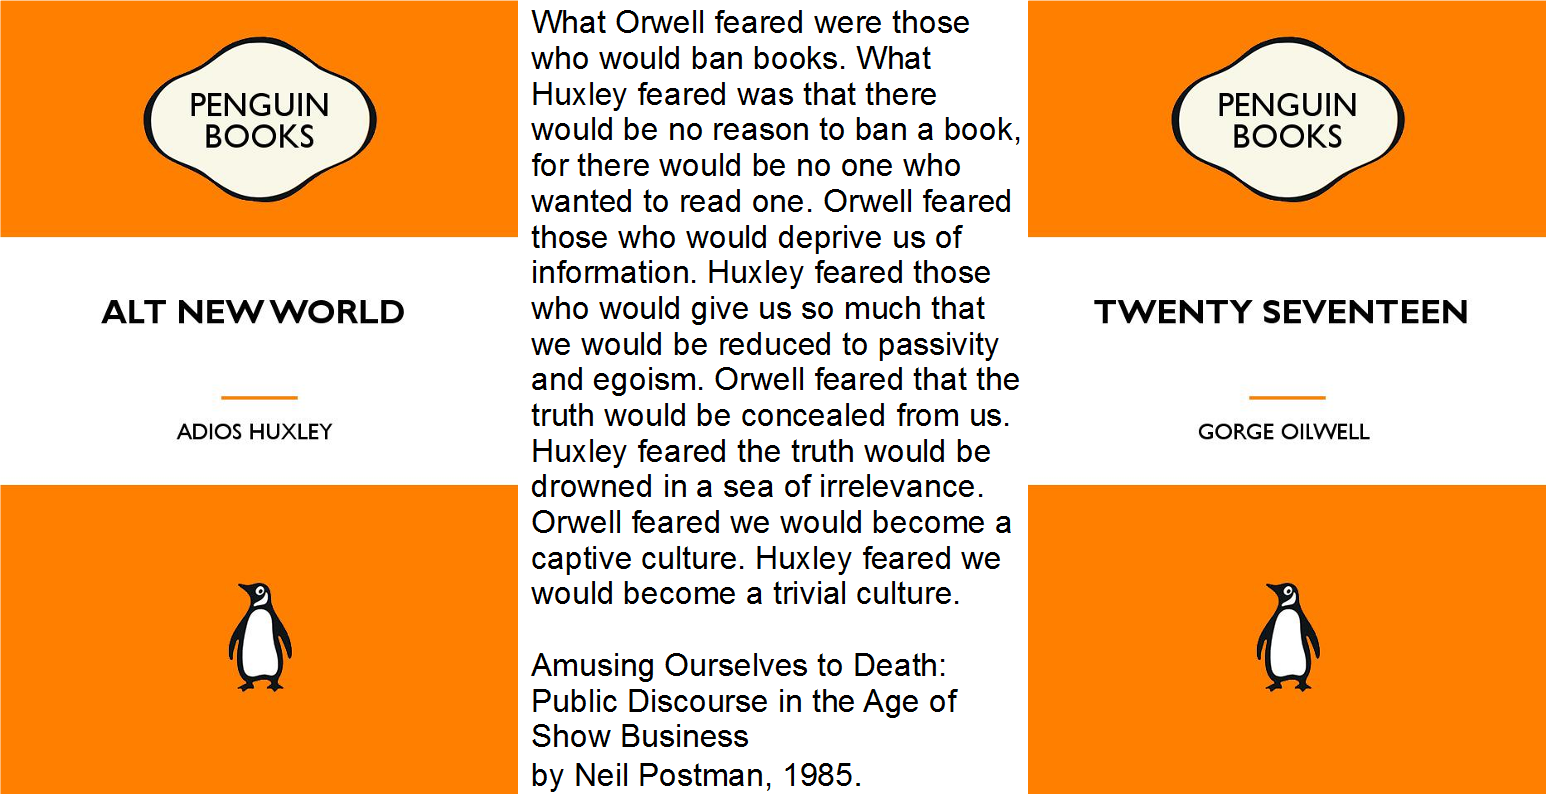 Find a copy of Amusing Ourselves to Death by Neil Postman in  a library near you . Although, I must observe that there are several mentions of book banning and suppressed science in Aldous Huxley's Brave New World ( read the full text on archive.org and  all of Orwell's 1984 , too).